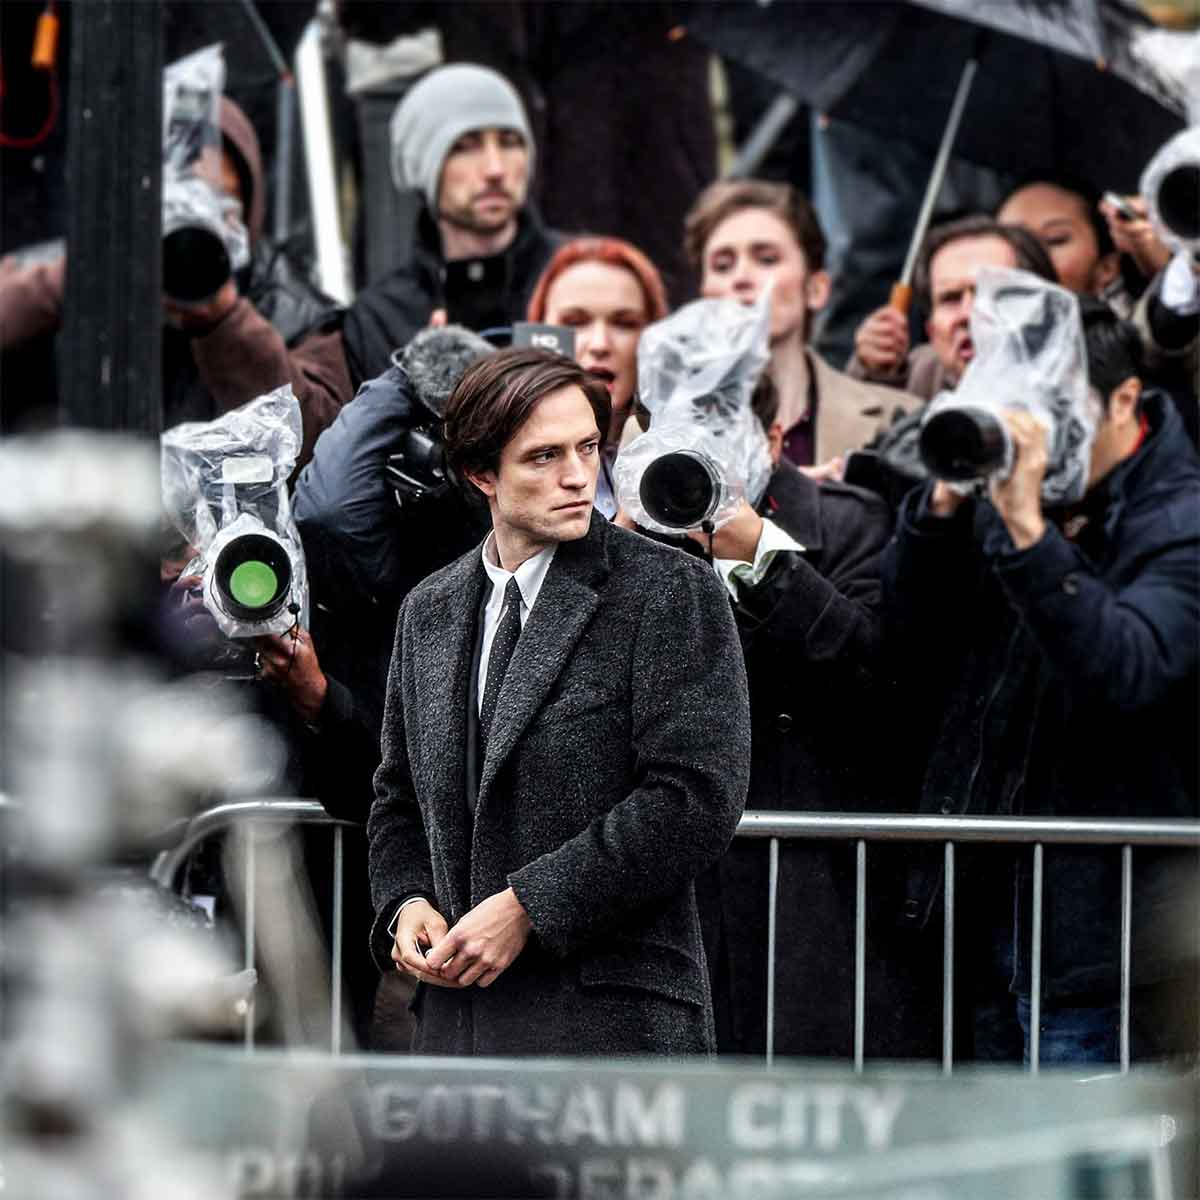 Filtered images of the return of Robert Pattinson to the filming of the Batman